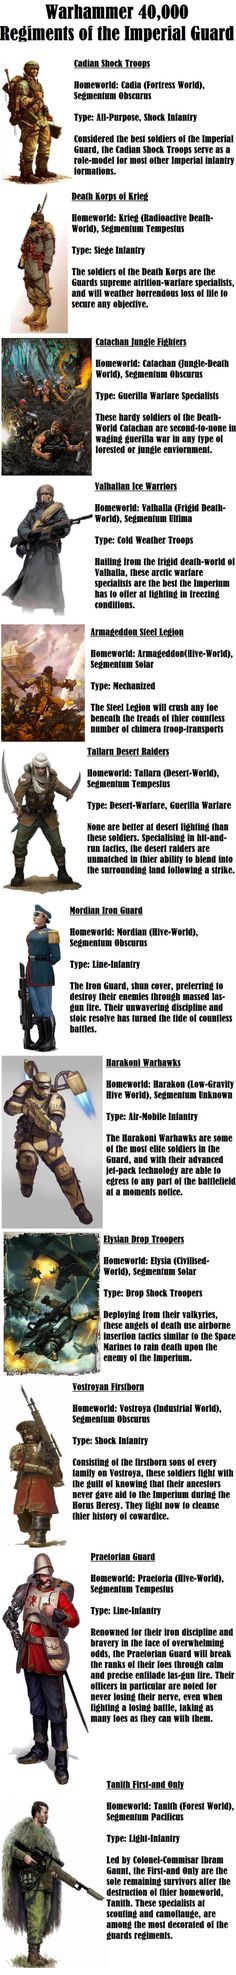 Warhammer 40,000: Regiments of The Imperial Guard